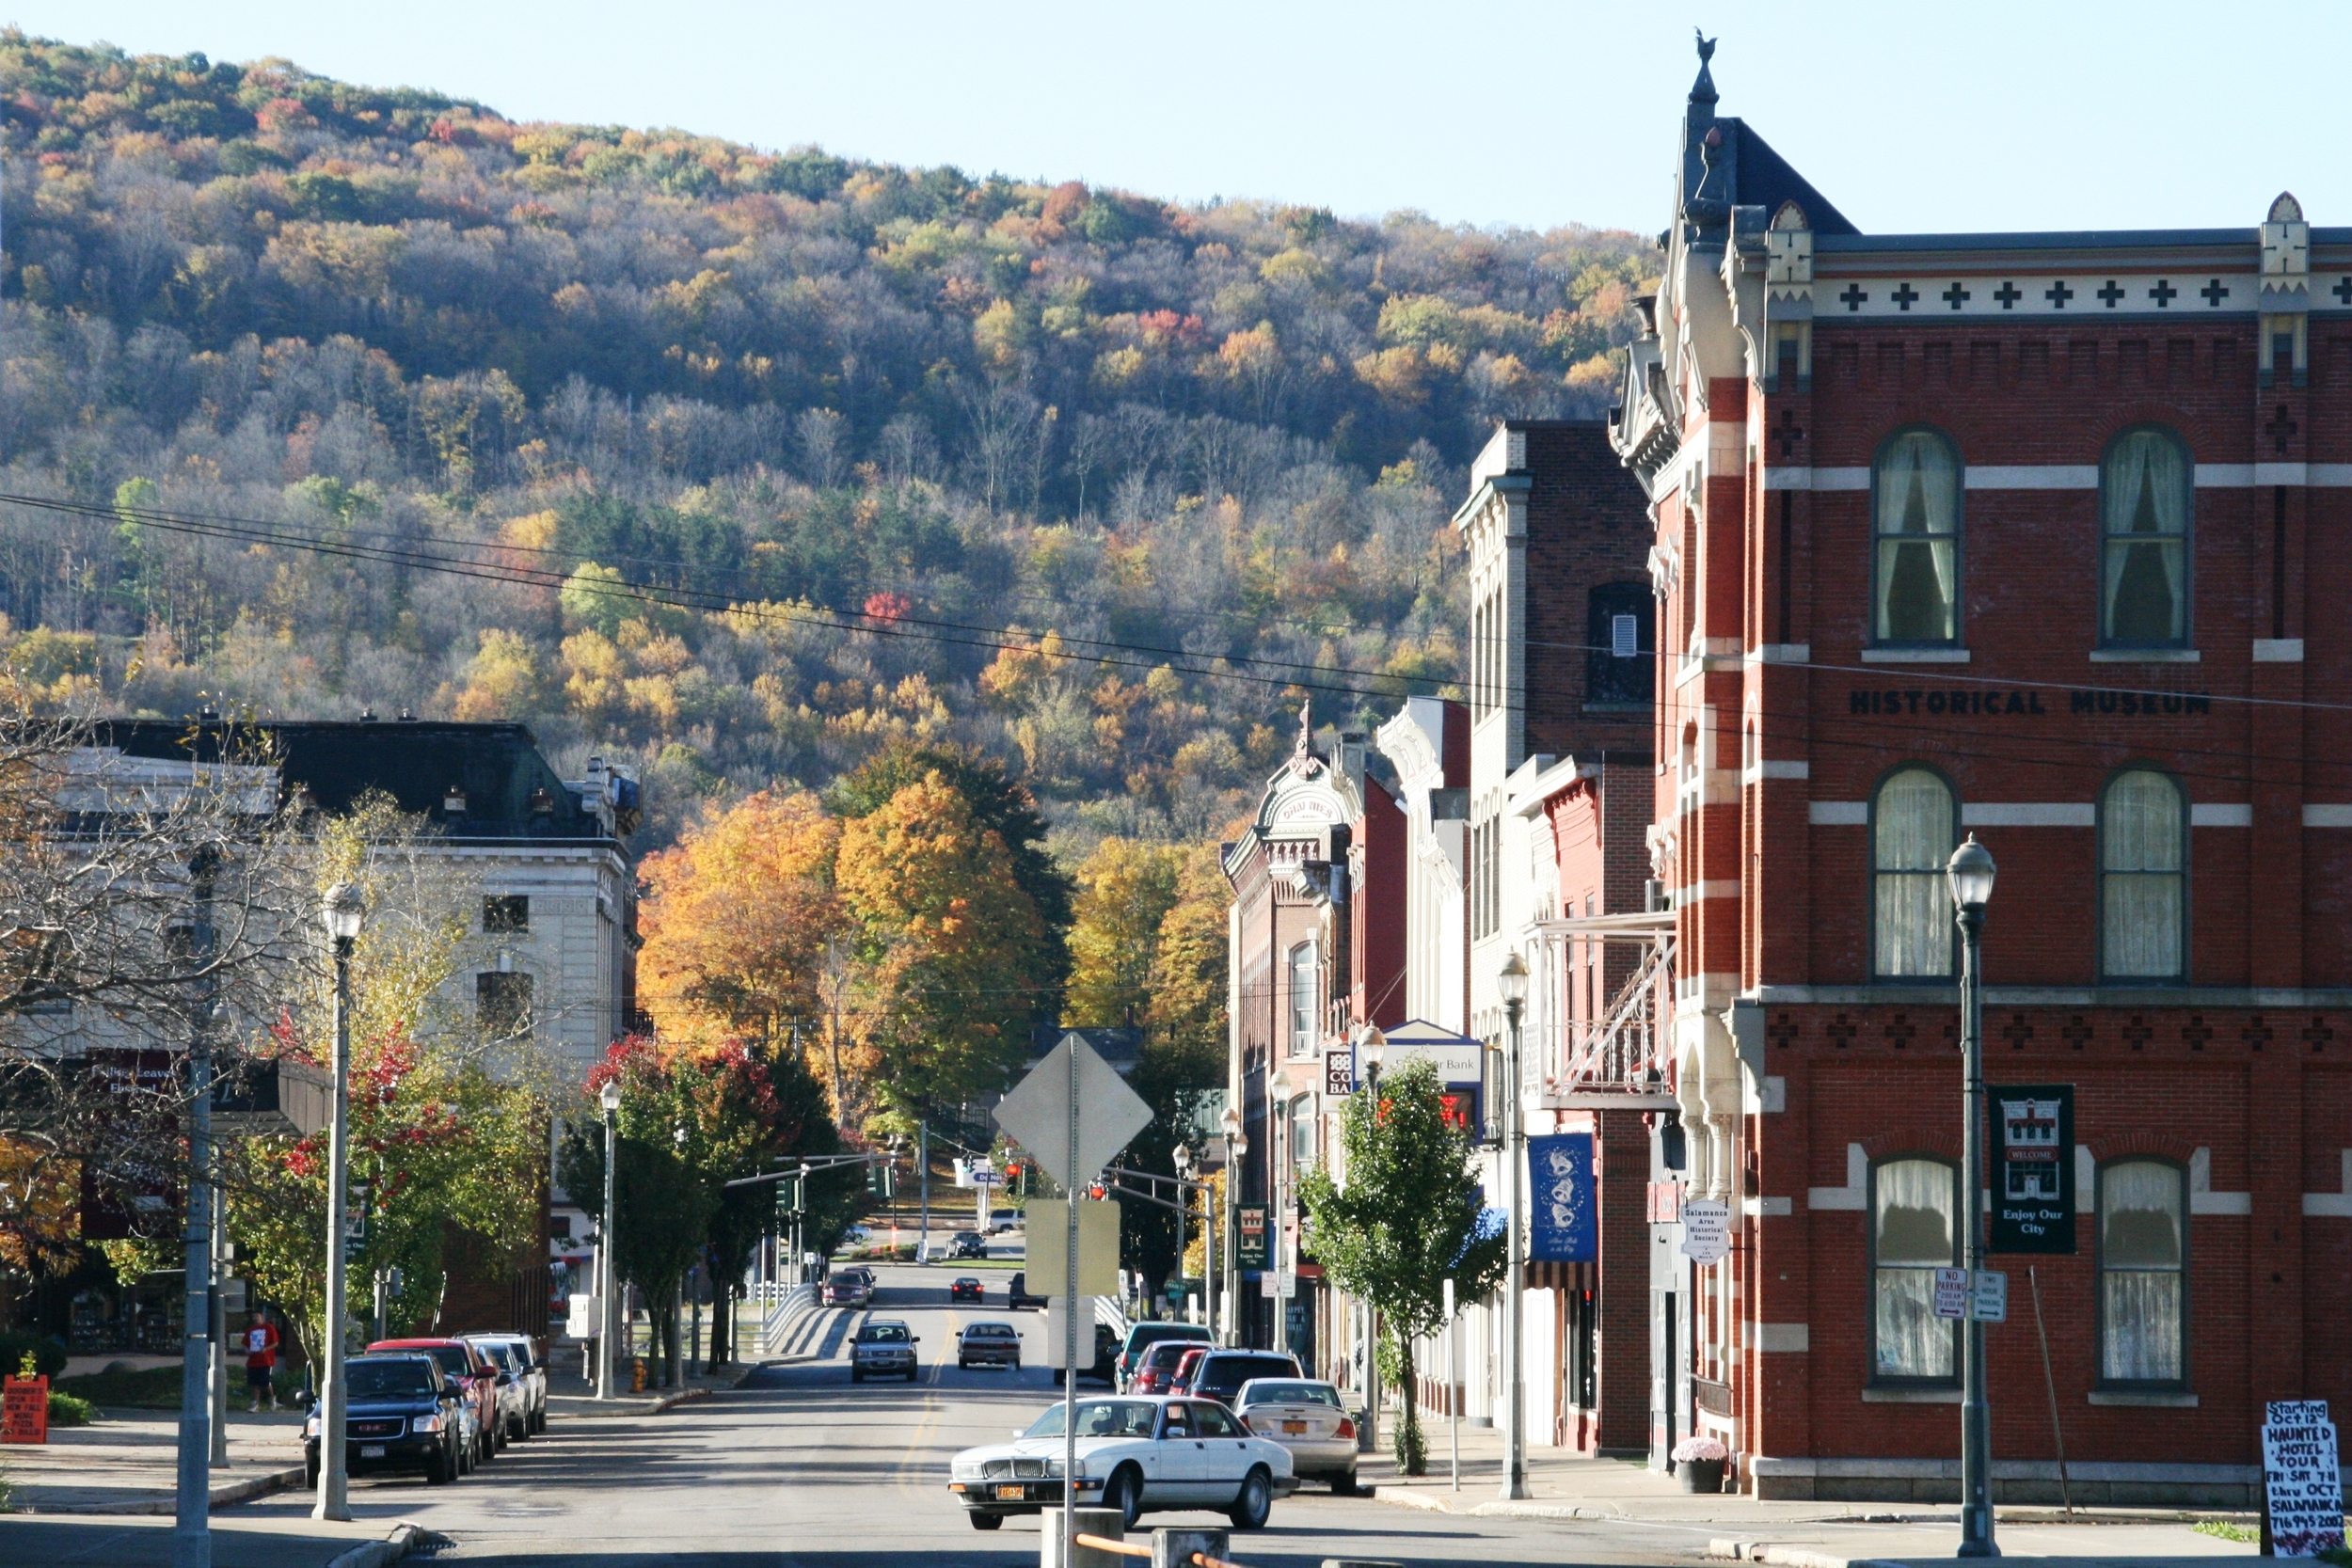 Image of downtown Salamanca, NY